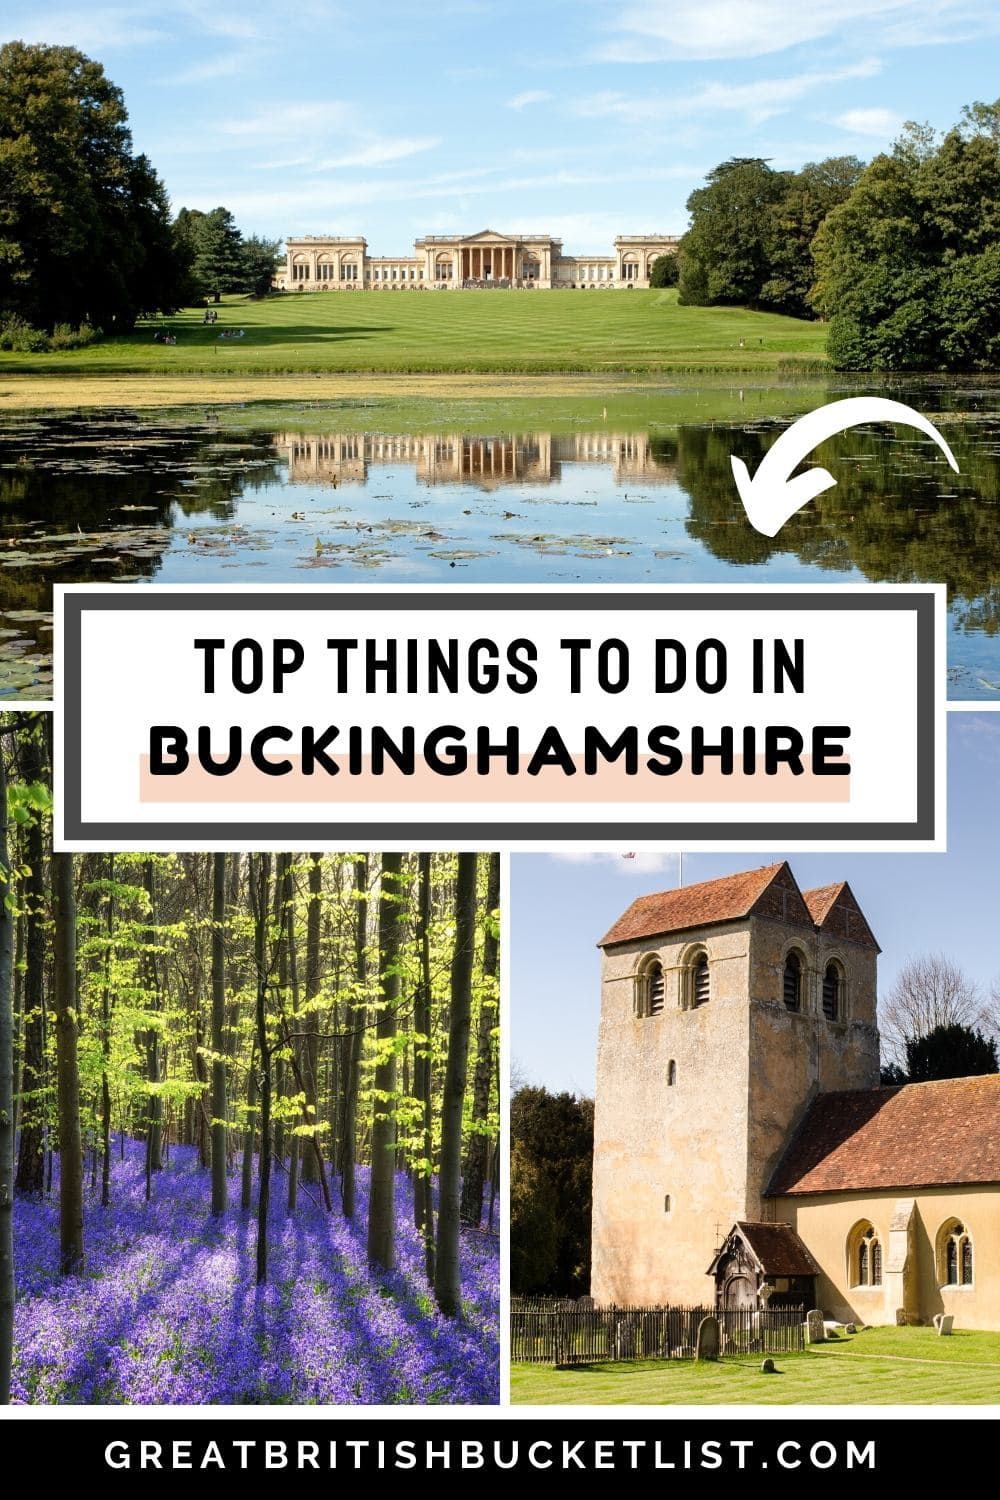 Top things to do in Buckinghamshire